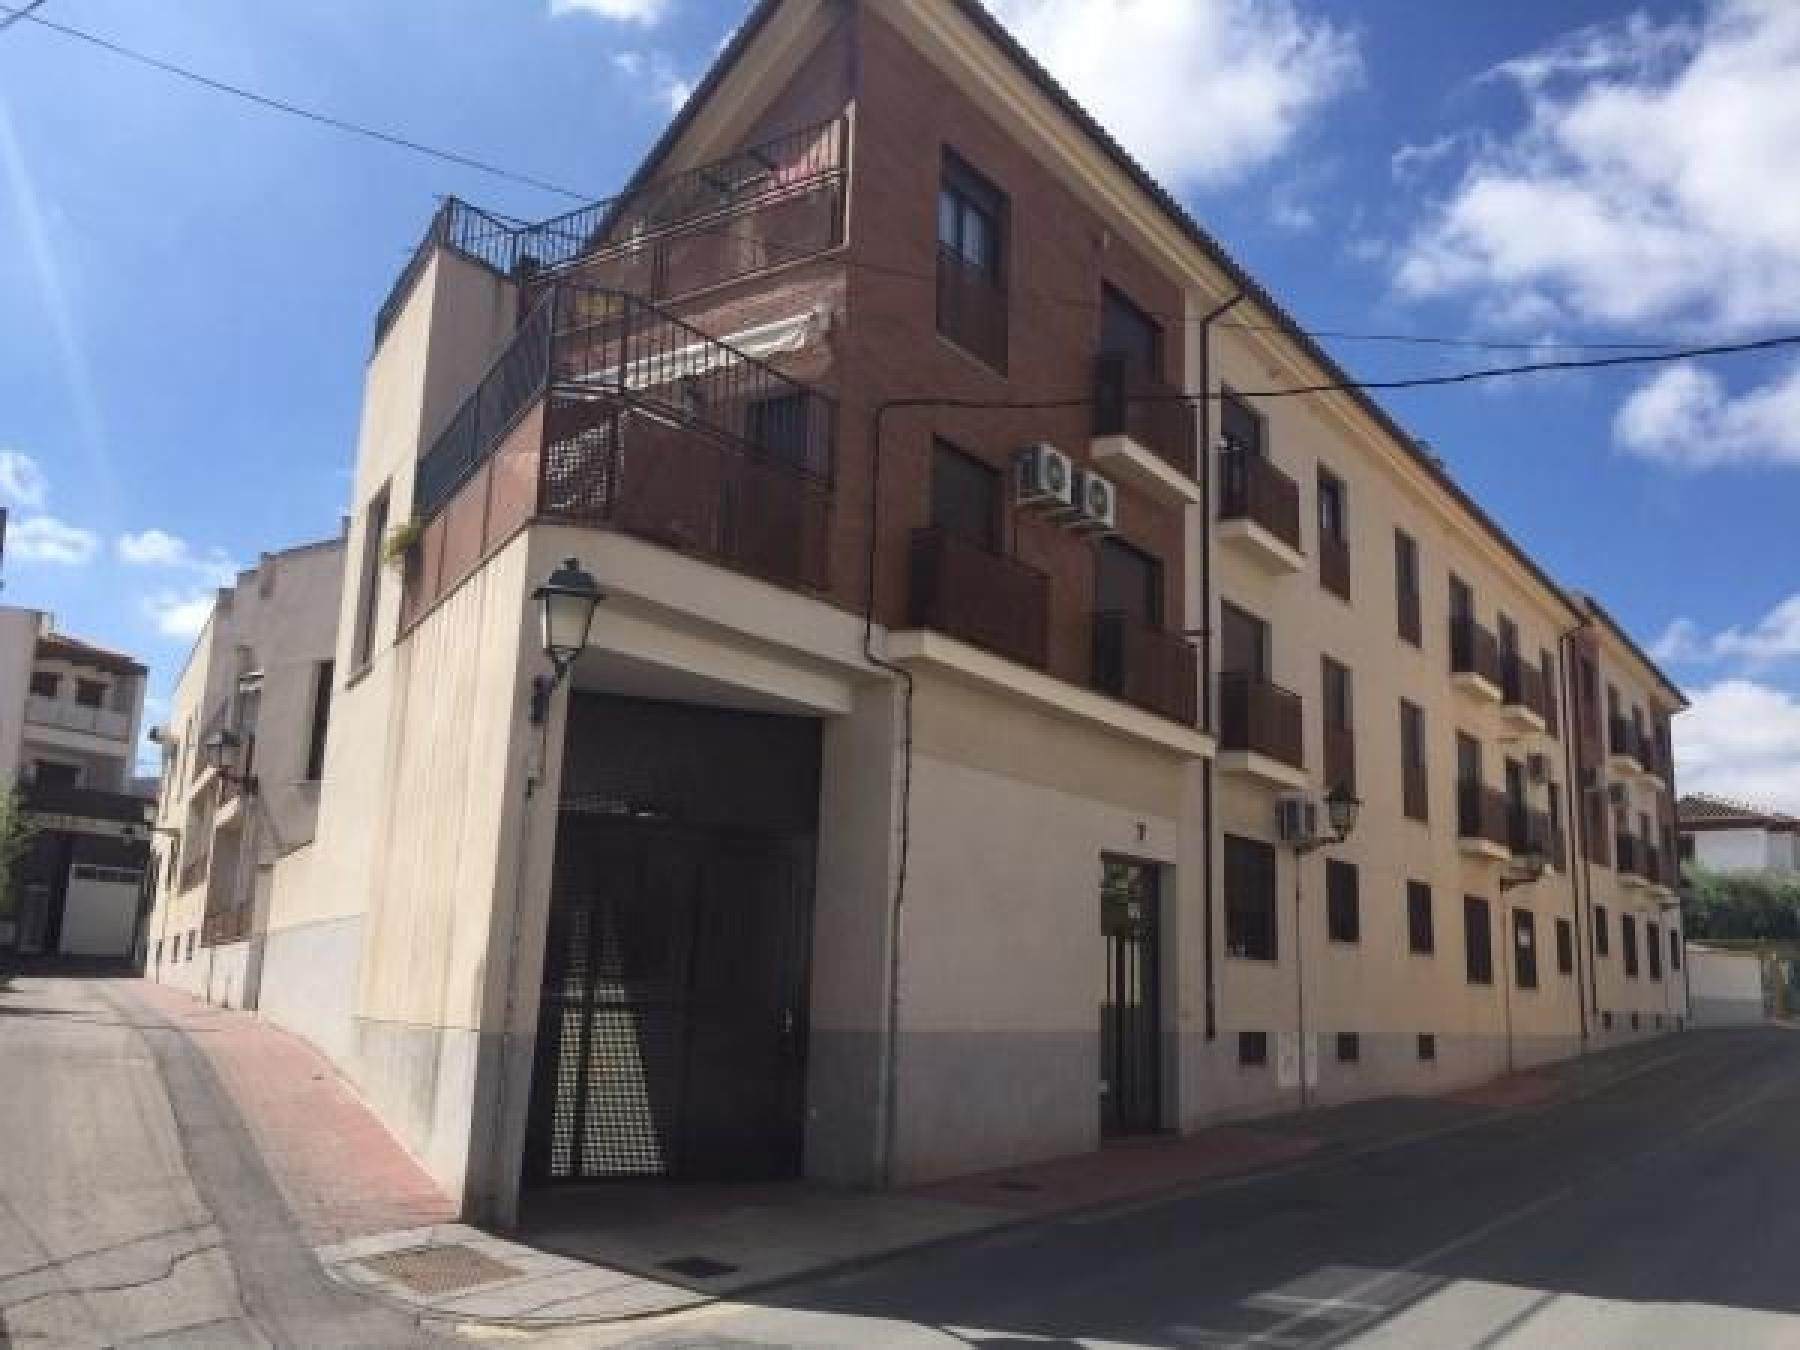 Piso  Cl cruces, 7. Cruces 7_2001##920003201